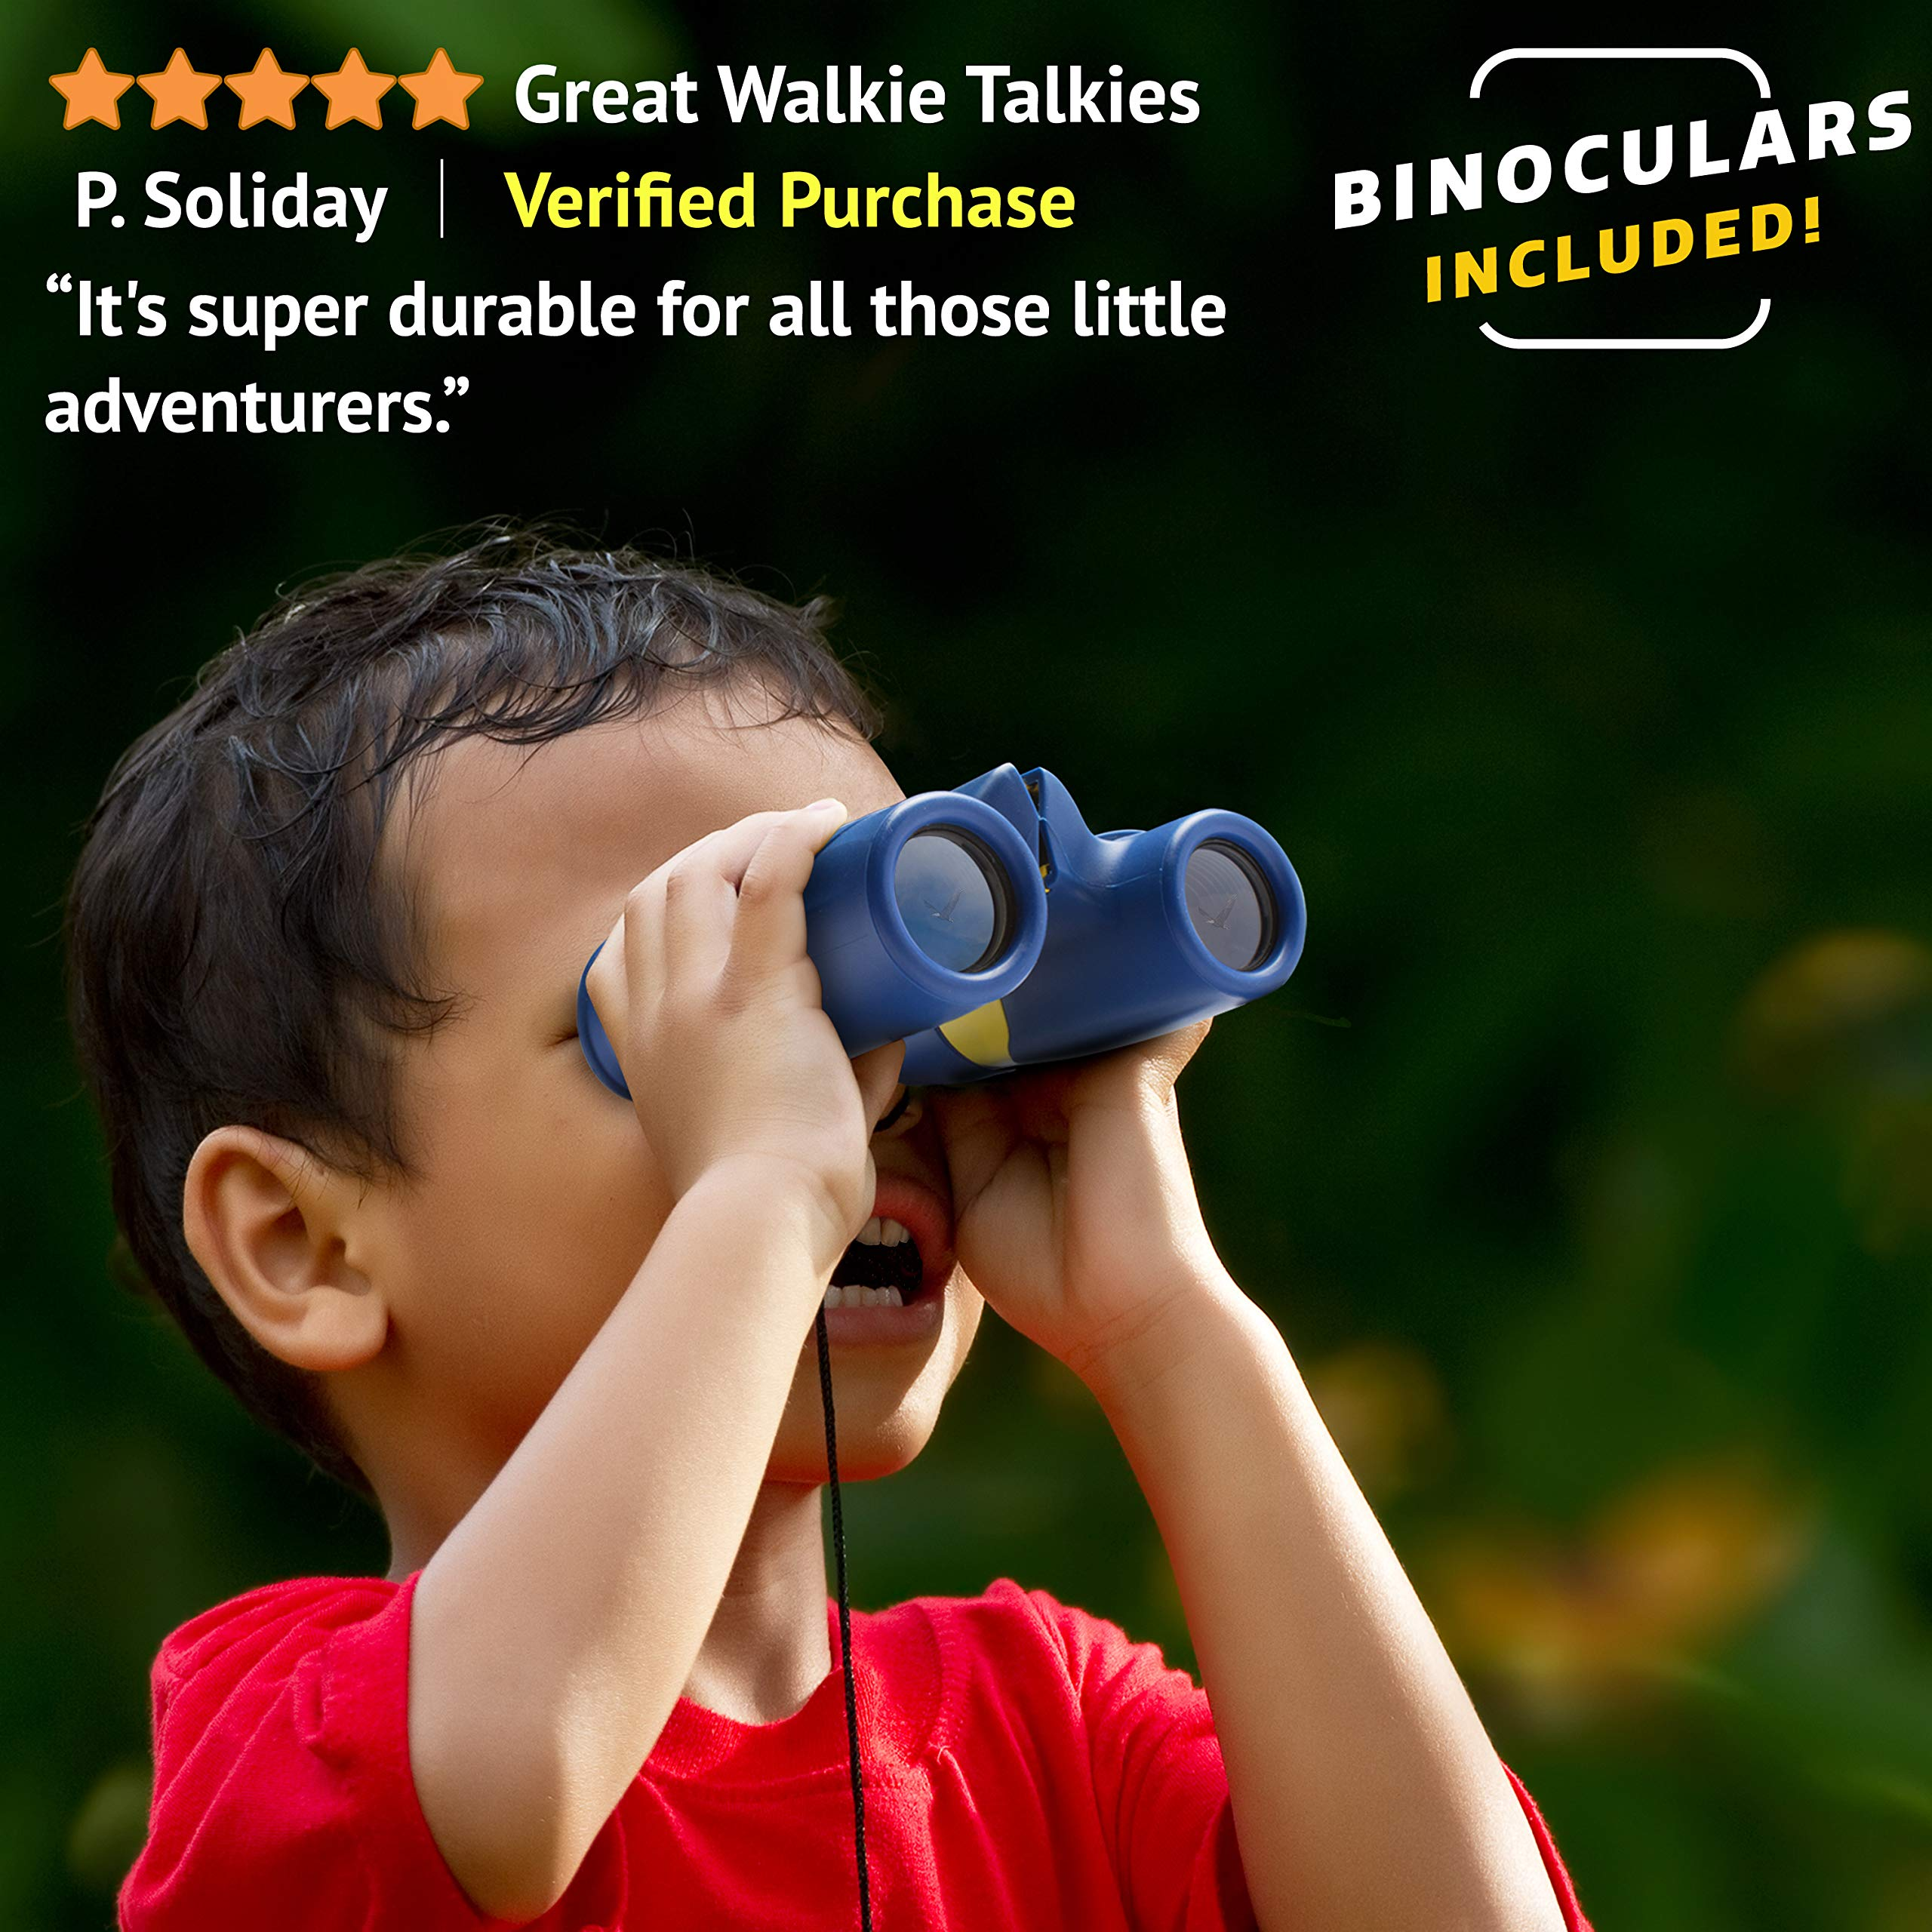 USA Toyz Walkie Talkies with Binoculars for Kids - Vox Box Voice Activated Walkie Talkies for Boys or Girls, Long Range Walkie Talkie Toys Set by USA Toyz (Image #4)